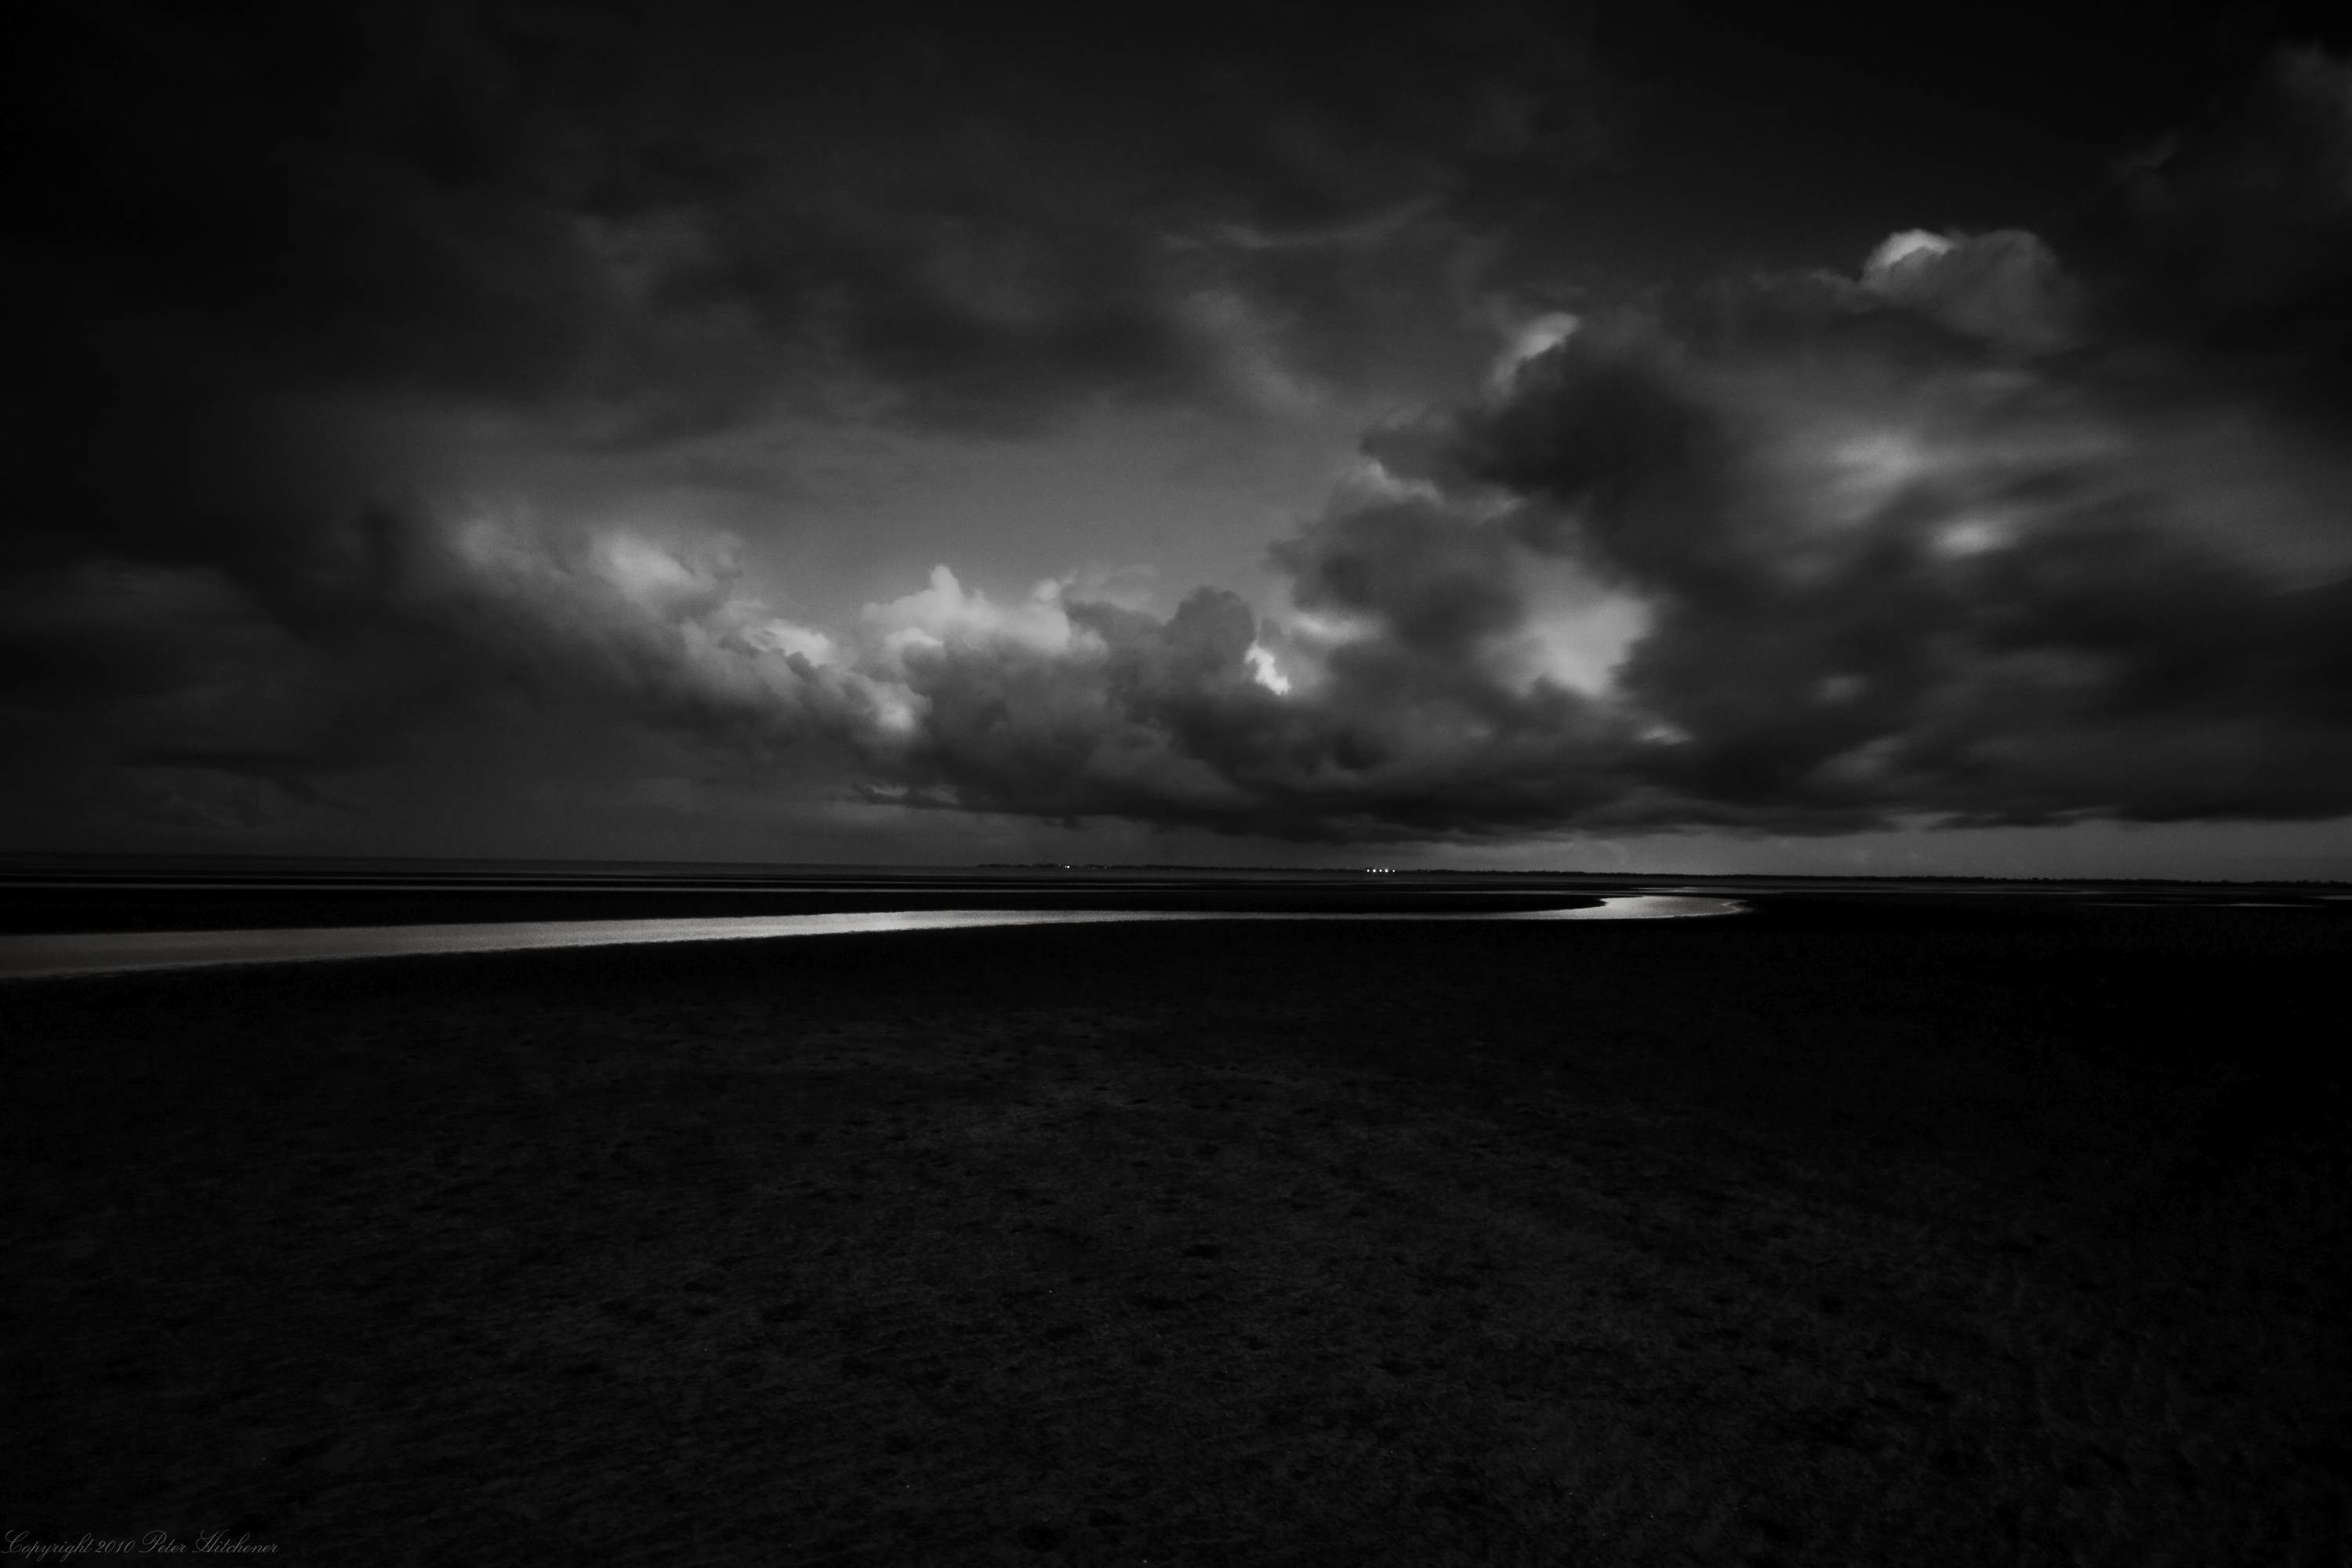 Dark Clouds 32 391183 High Definition Wallpapers  wallalay.